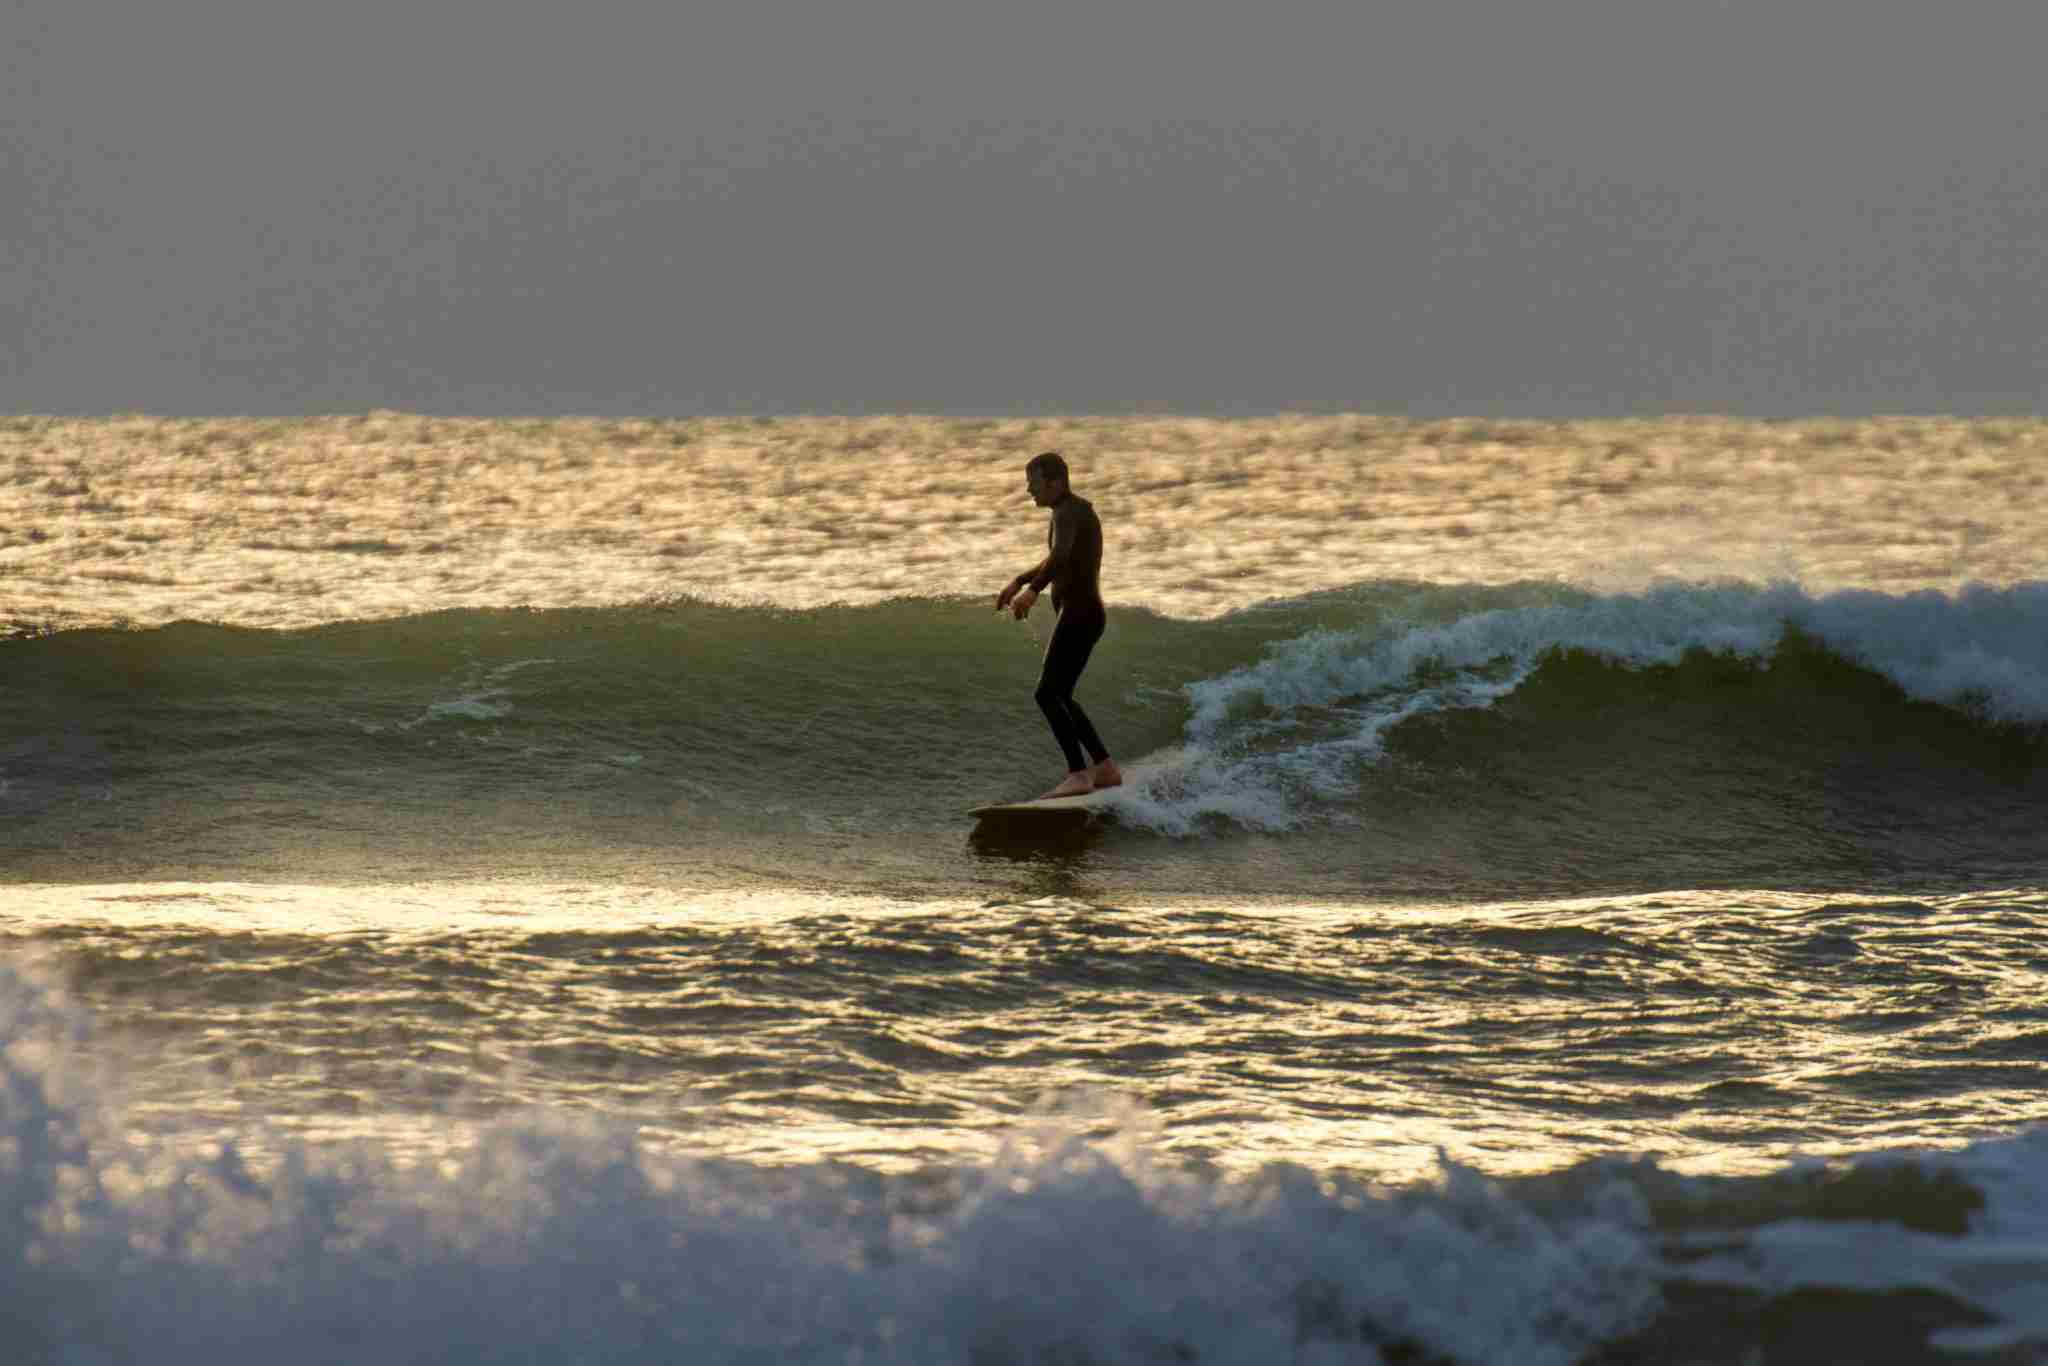 Beautiful light and fun little waves at Compton Bay on the Isle of Wight. (Photo by s0ulsurfing - Jason Swain